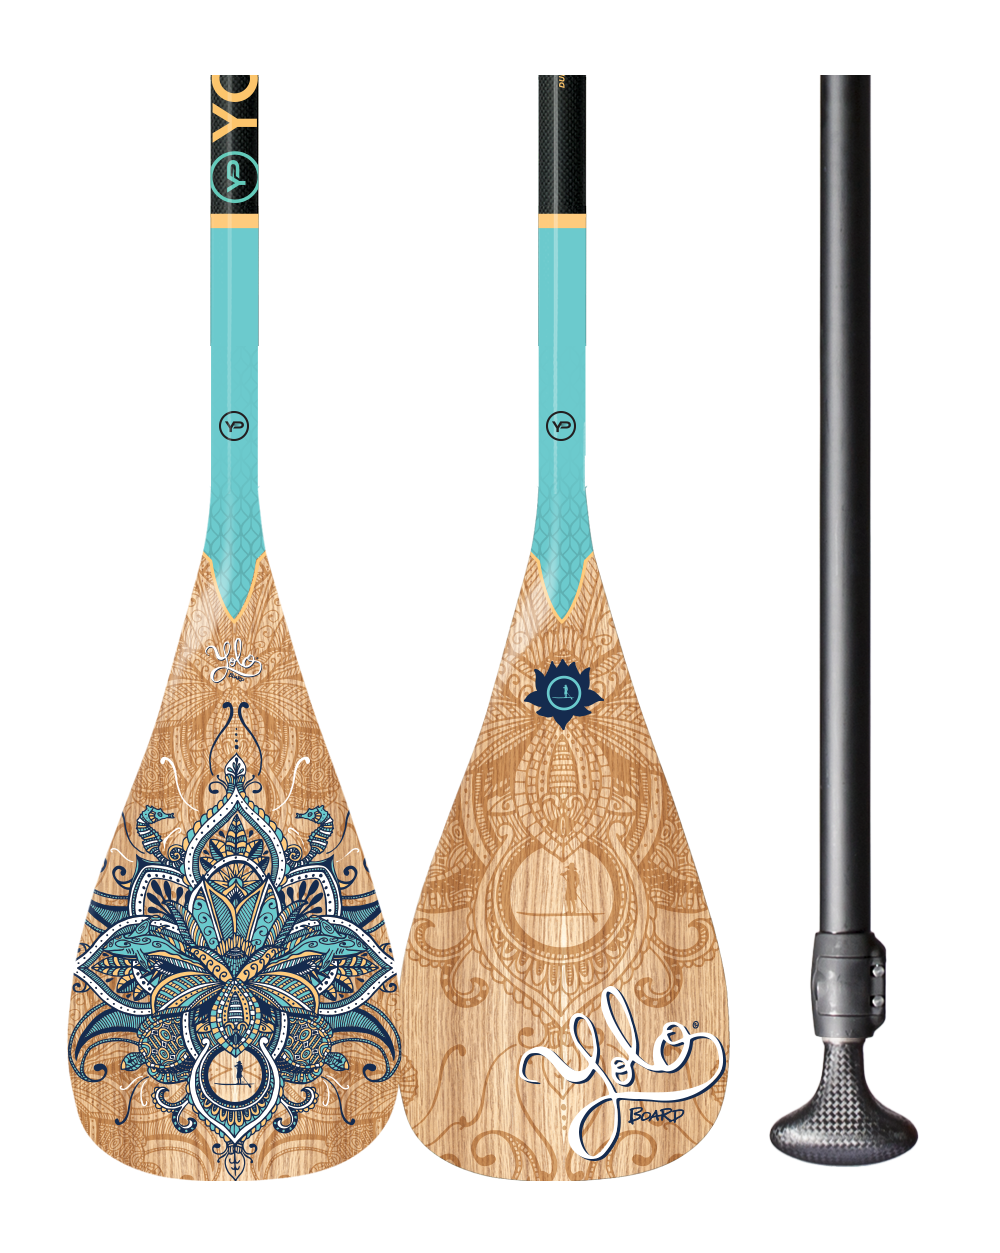 2017_paddles_product_view_comp_v2.png